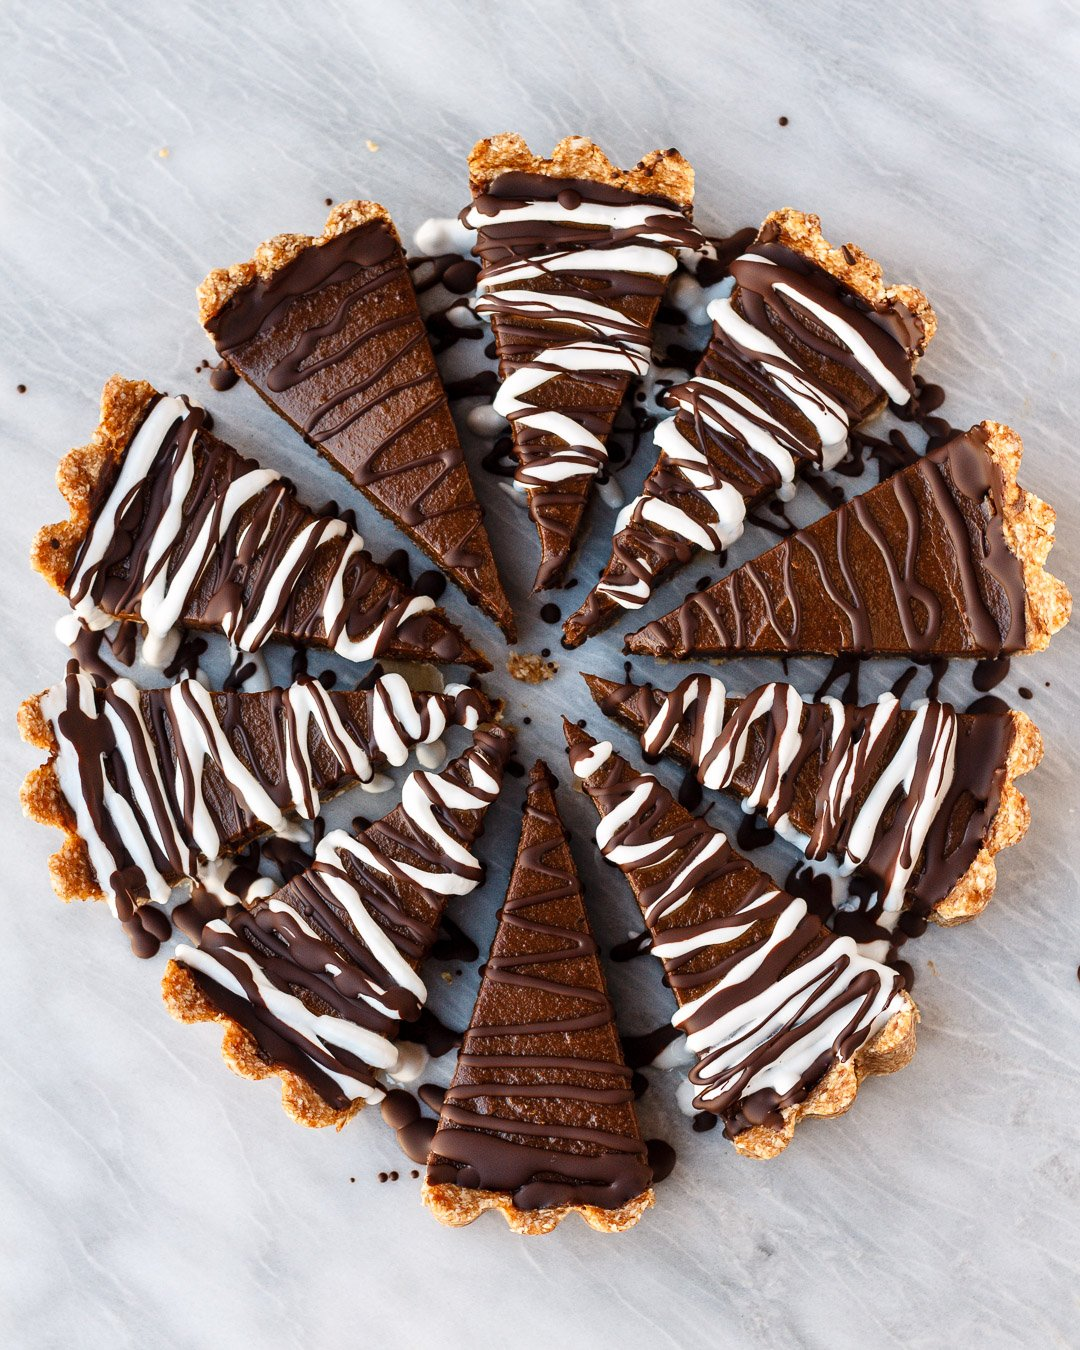 Chocolate Avocado Tart | Vegan, No Bake, and Gluten Free | Lu Xia